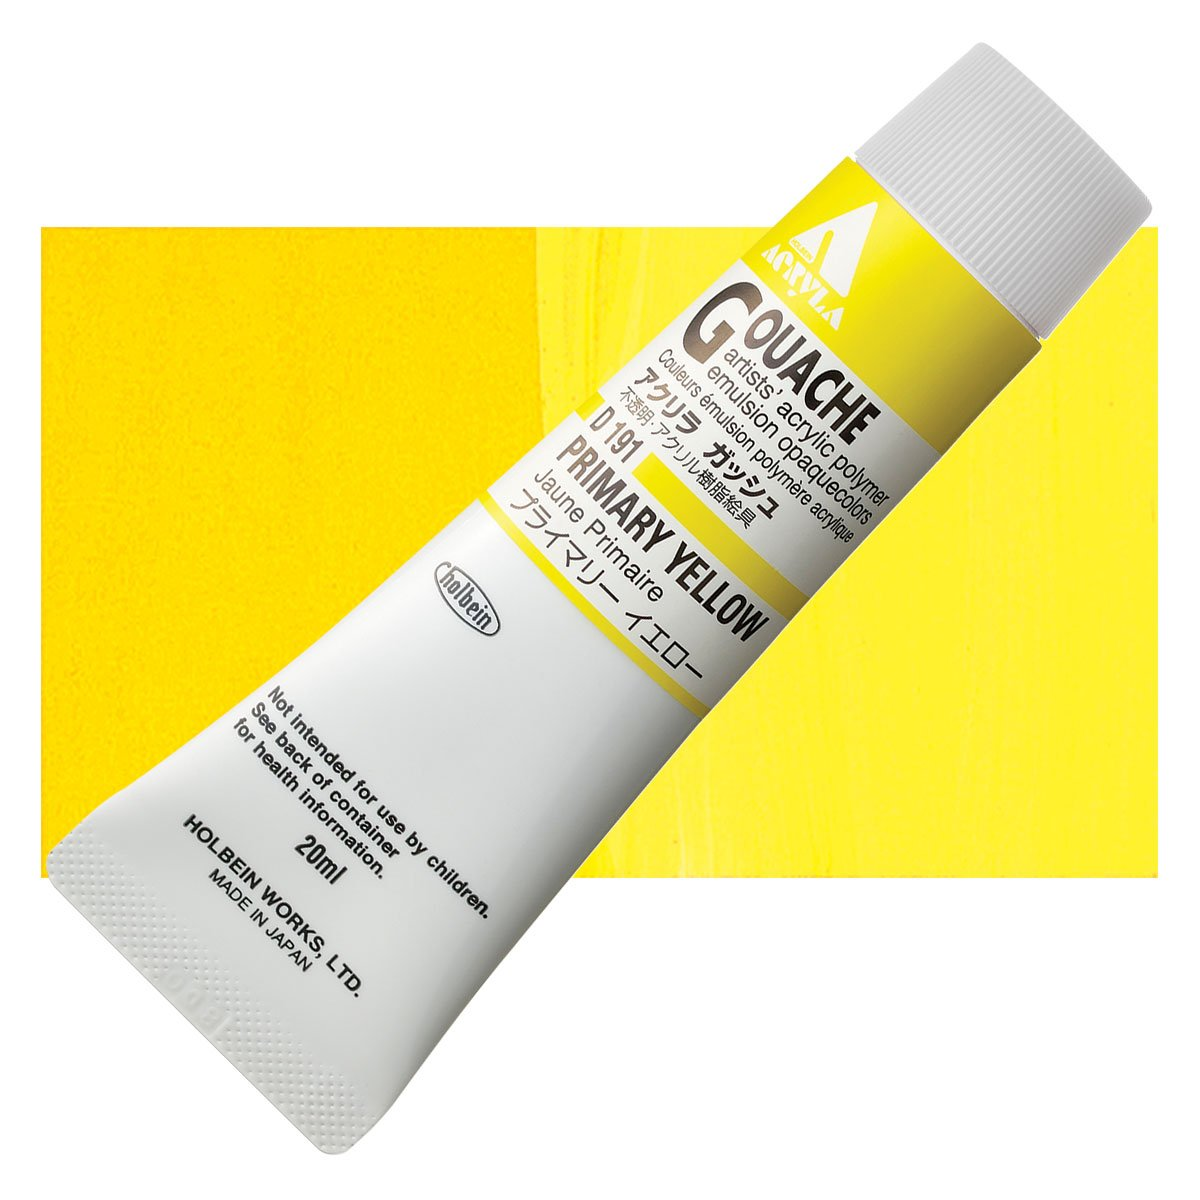 Holbein Acryla Gouache 20ml Tubes - Primary Yellow by Holbein - K. A. Artist Shop